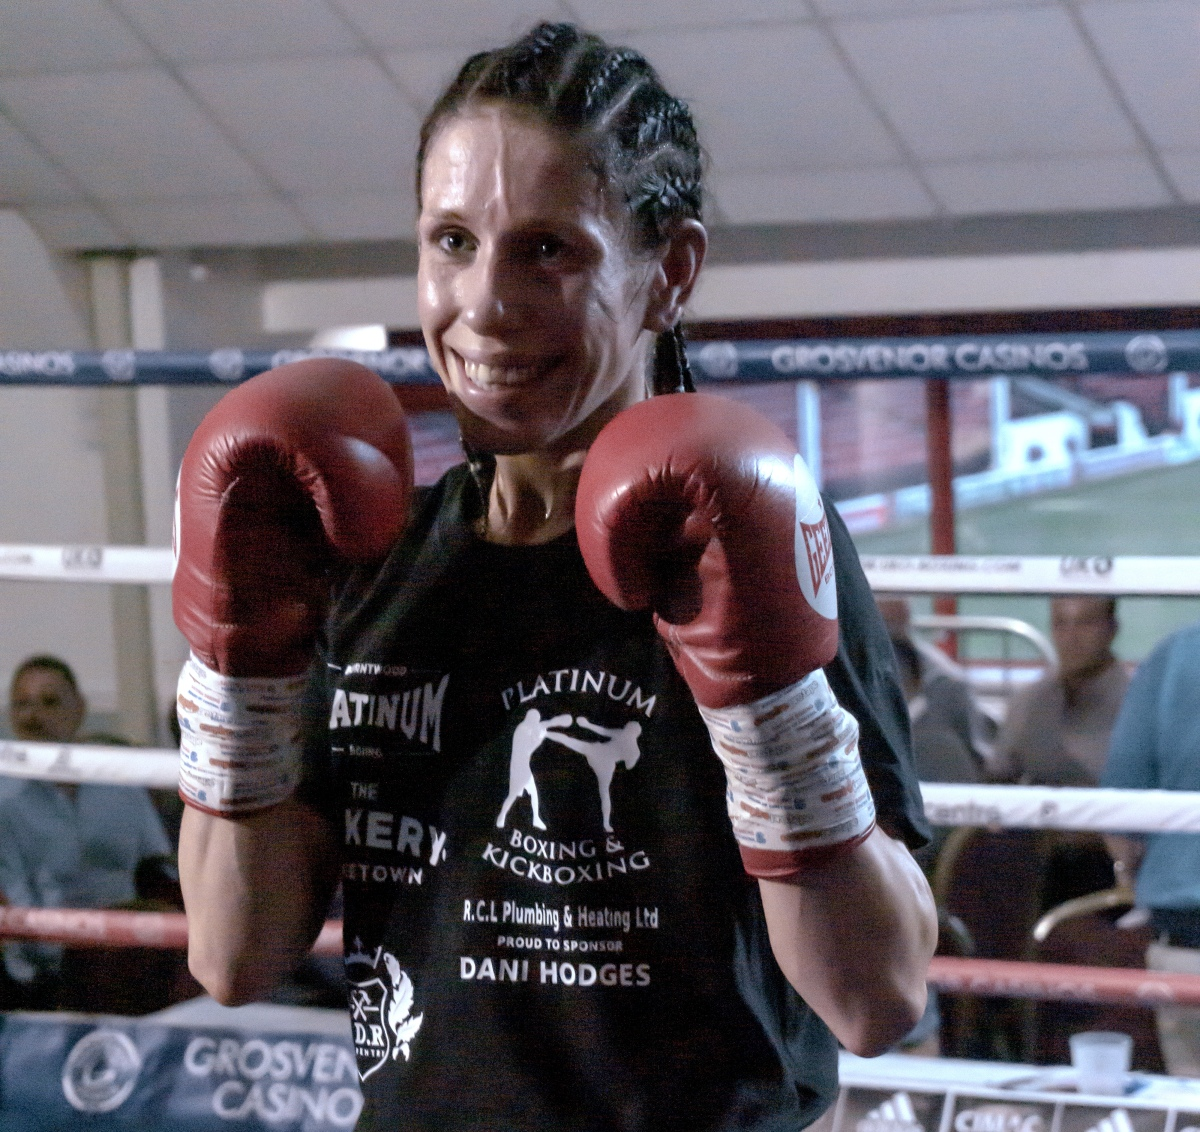 """It's time for me to prove that I'm a force to be reckoned with."" Dani Hodges"